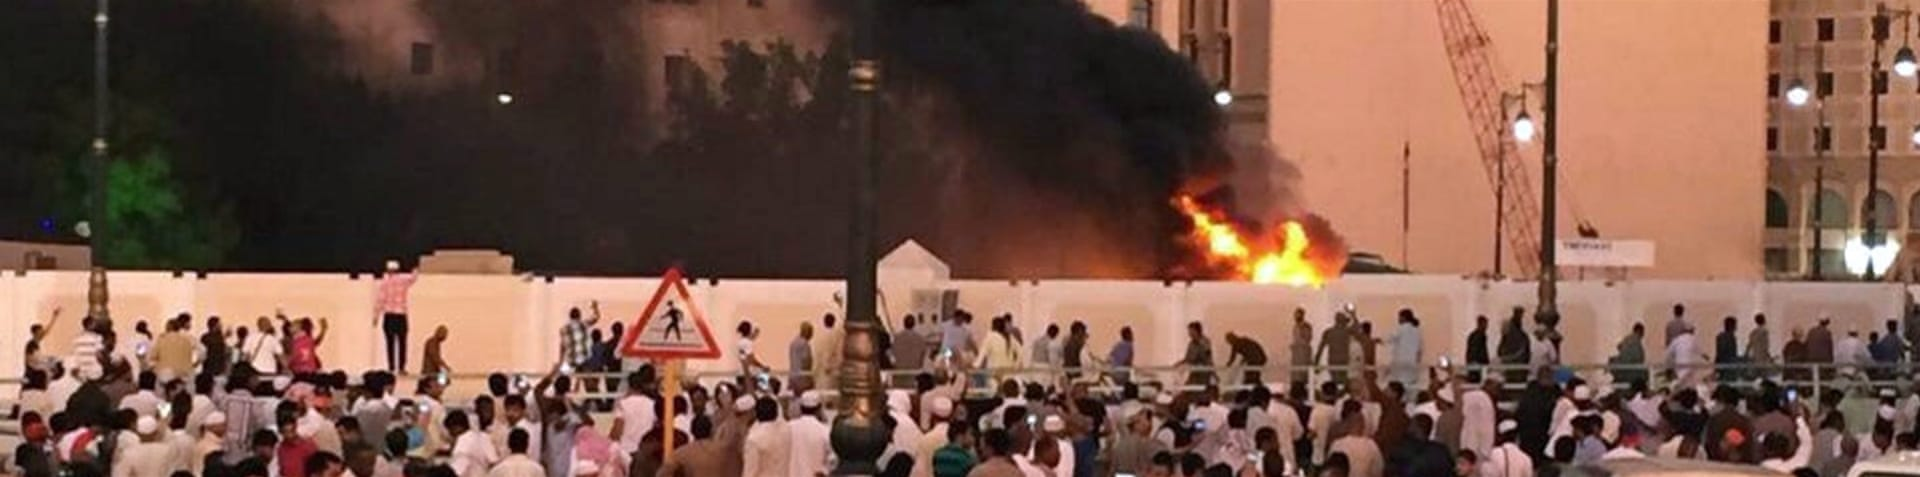 The blast hit just before the sunset prayers, when people were breaking their Ramadan fast [Saudi Press Agency/EPA]